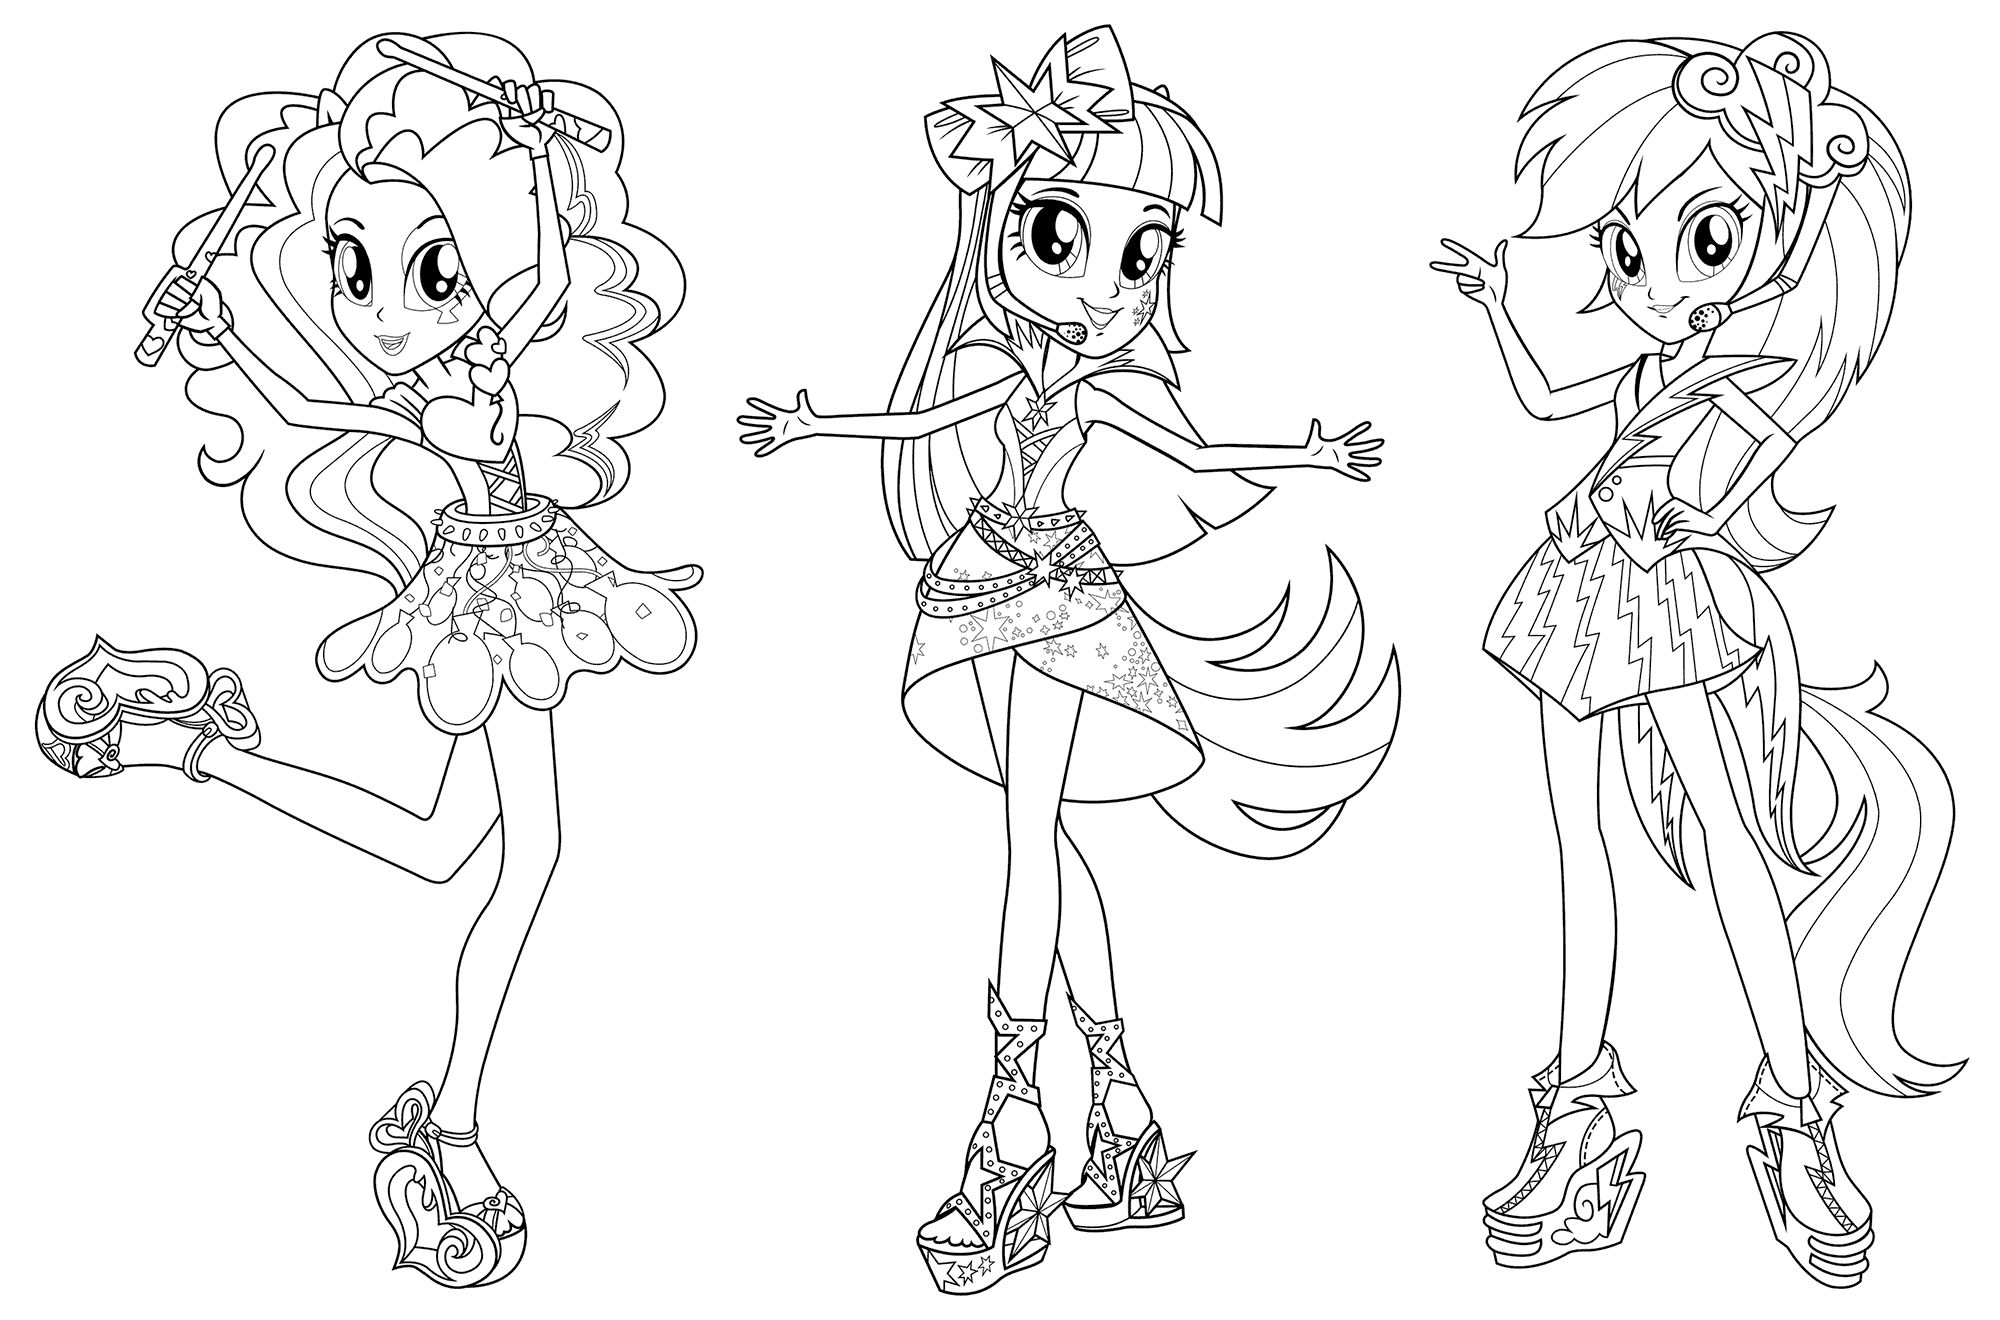 Coloring Pages My Little Pony Equestria Girls Printable Warna